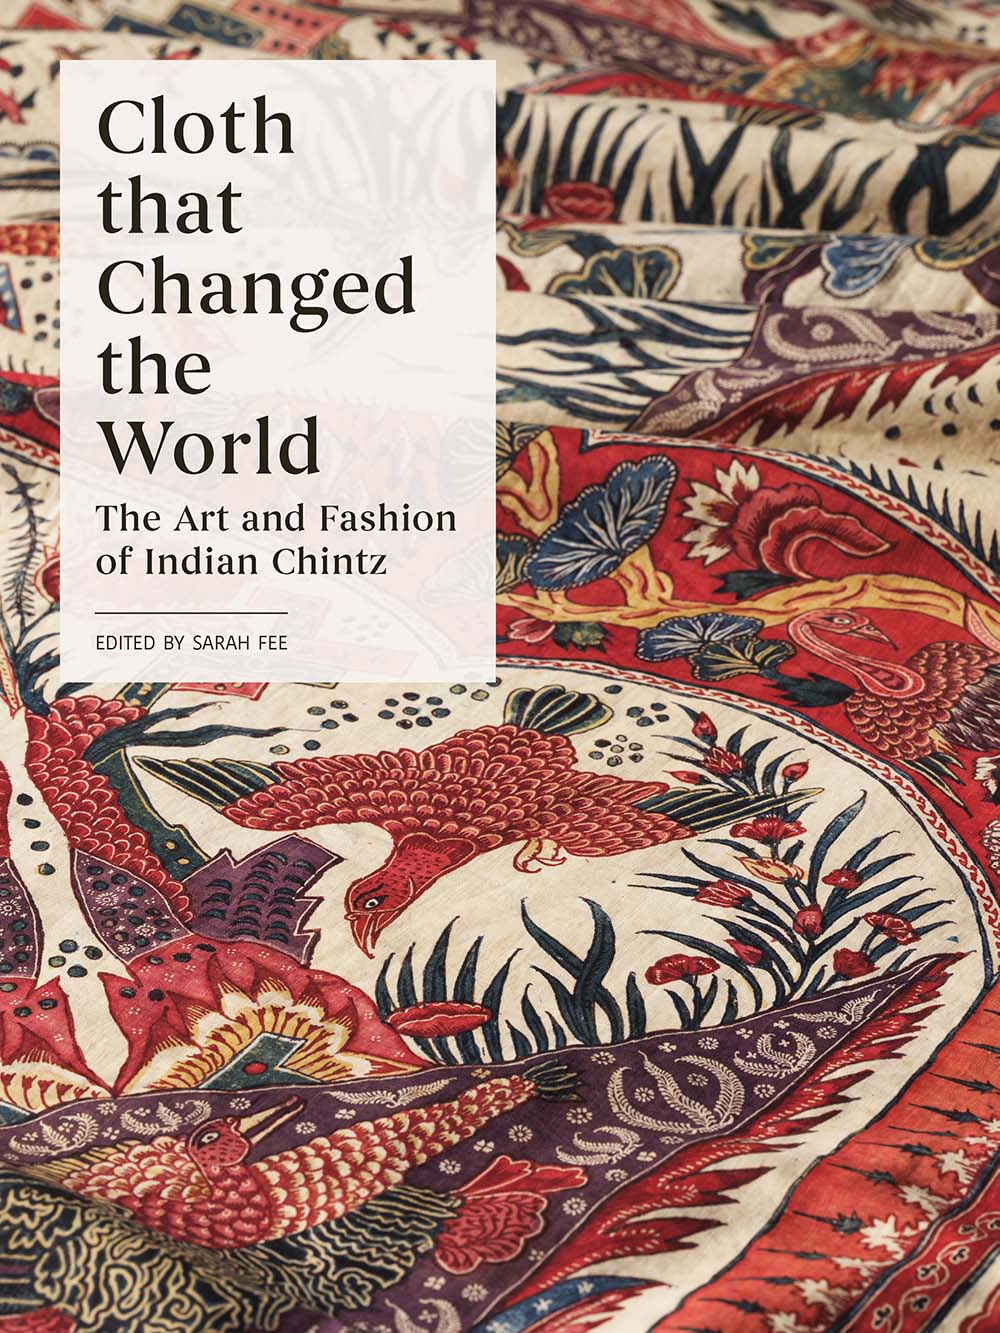 Cloth that Changed the World: The Art and Fashion of Indian Chintz